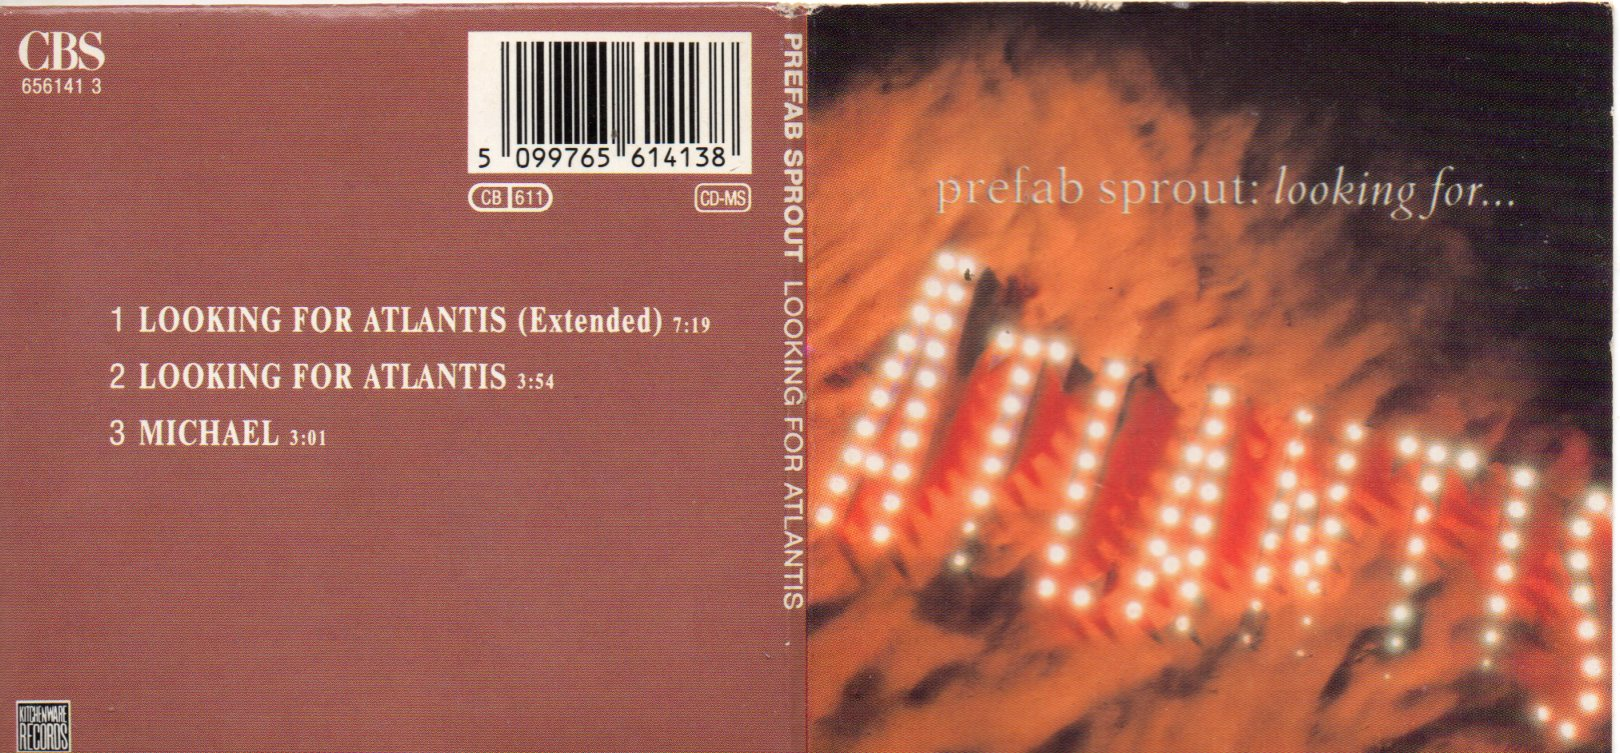 PREFAB SPROUT - Andromeda Heights 4-track promo sampler CD, double card wallet picture sleeve - CD single